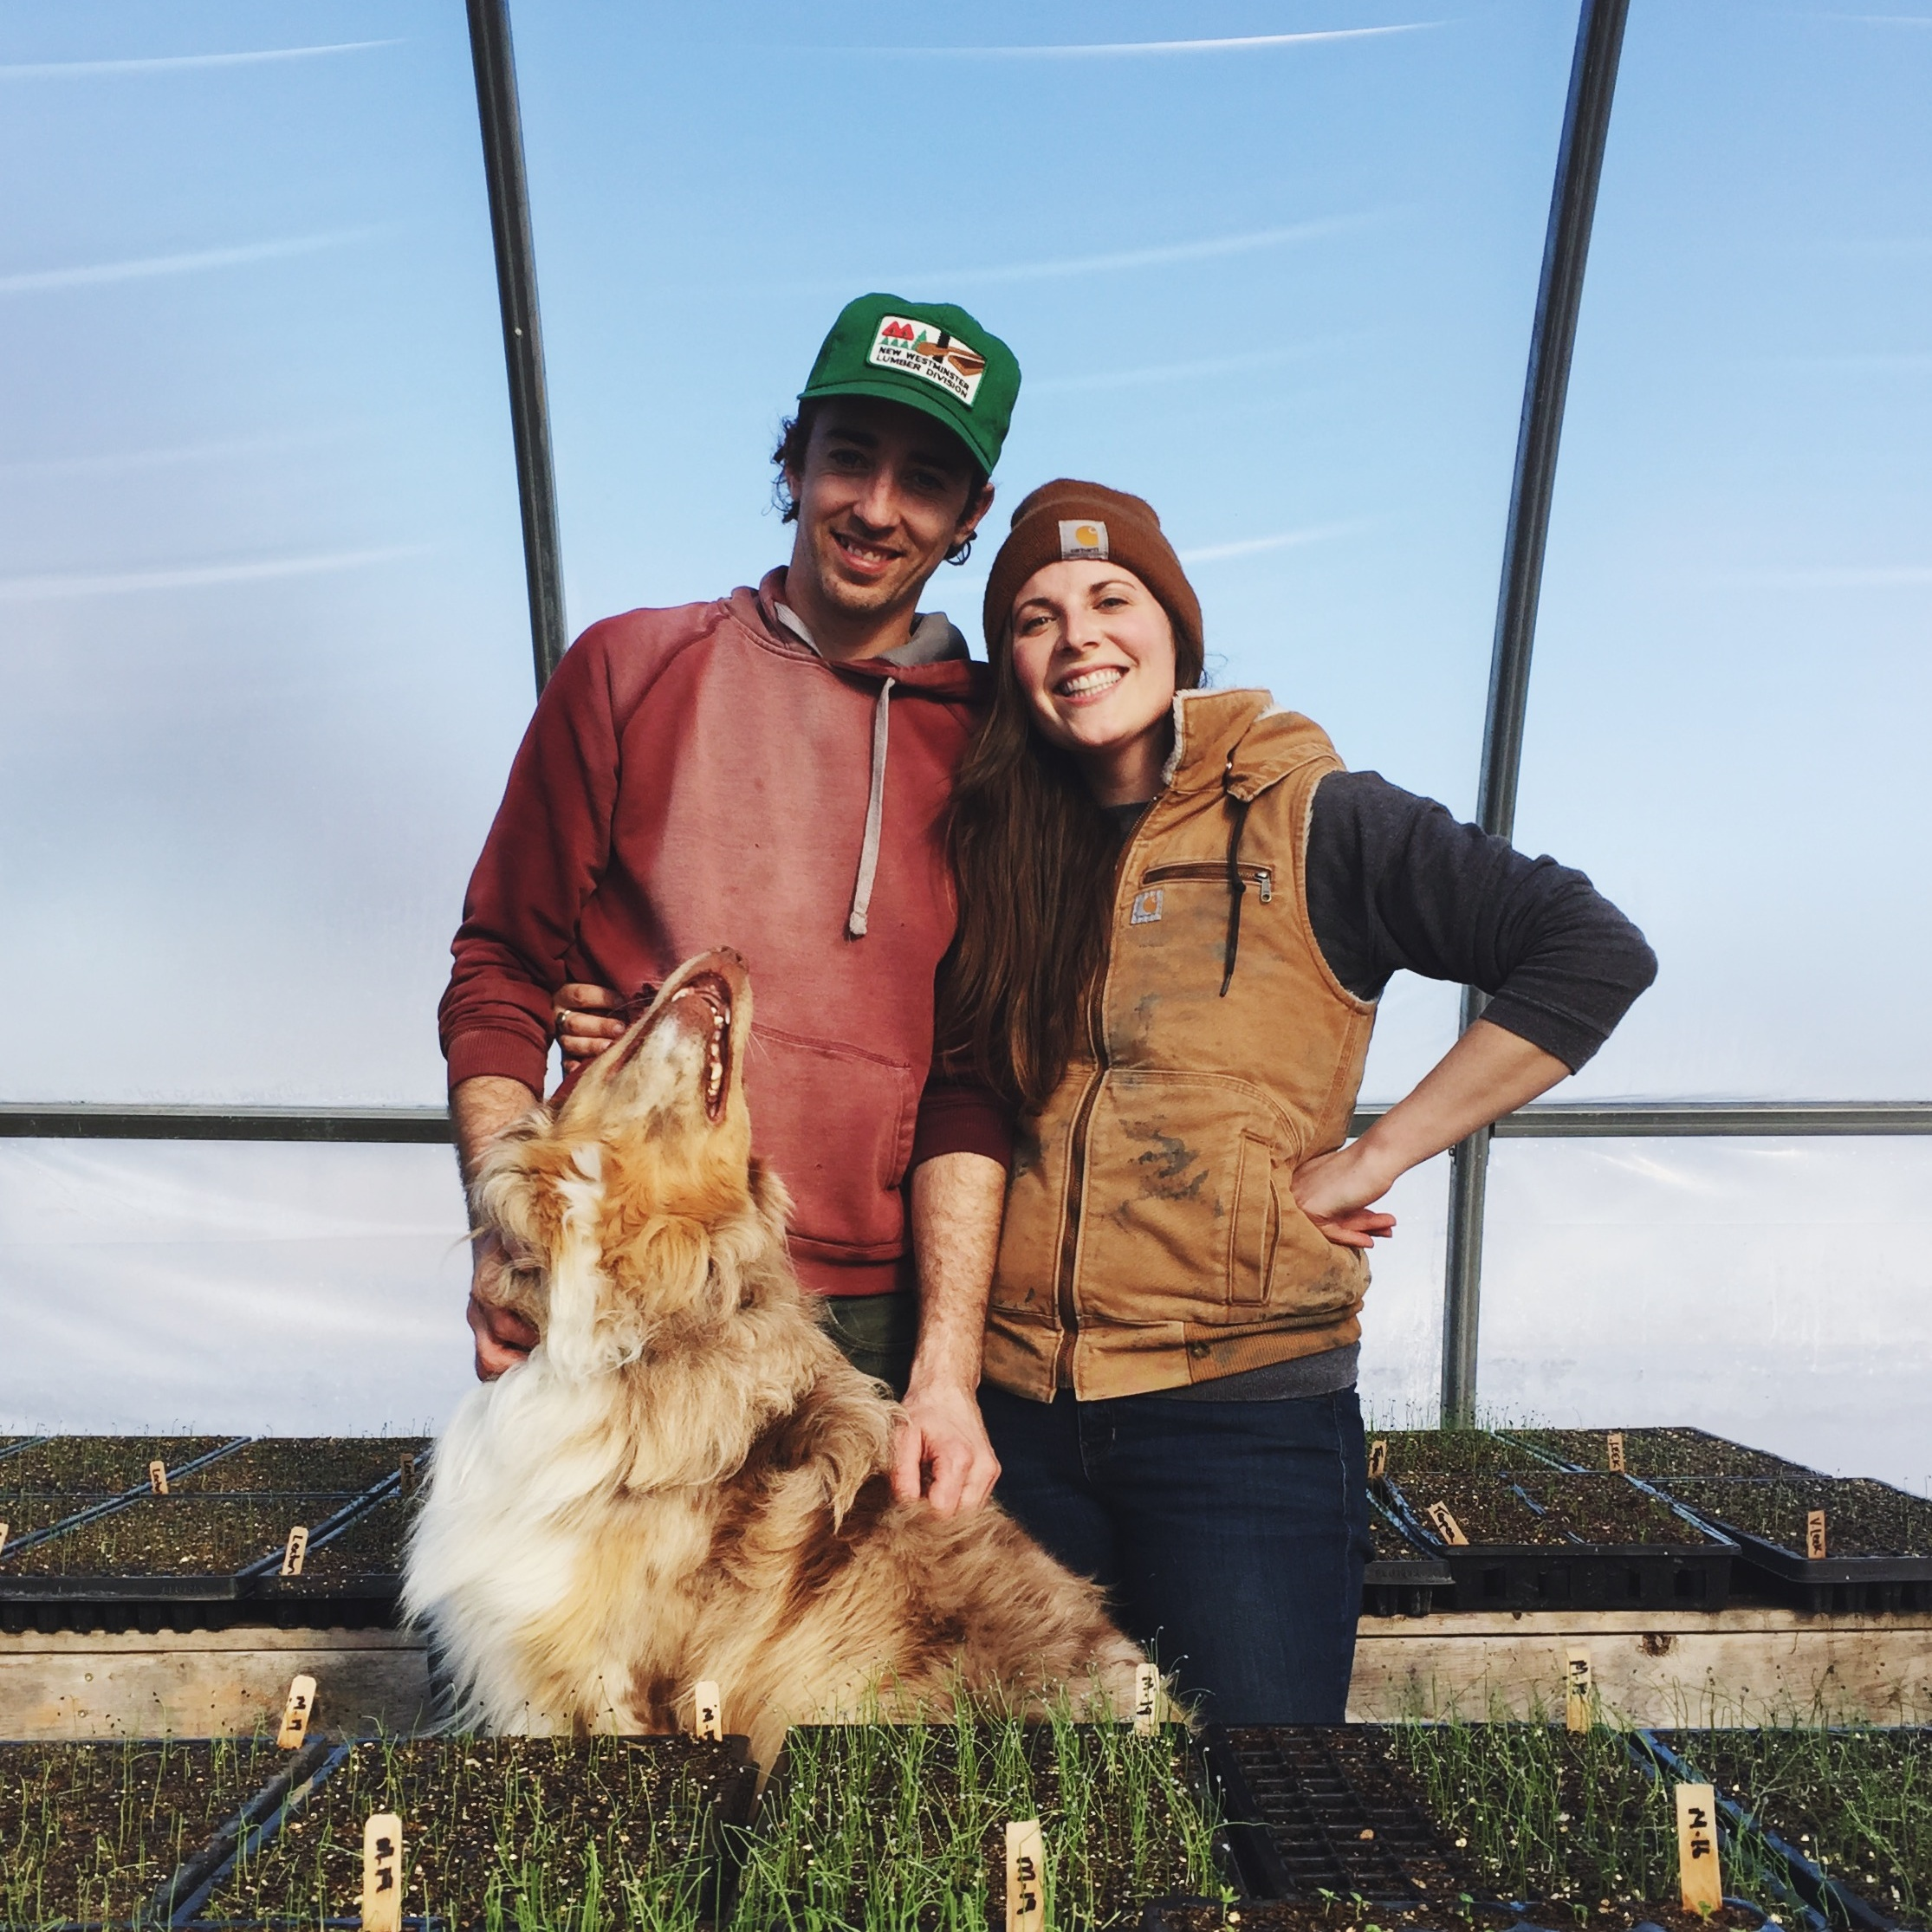 about - Located near Elie, Manitoba on Treaty 1 Territory, Hearts & Roots is a small-scale, certified organic fruit and vegetable farm producing high-quality, hand-tended produce for its community.